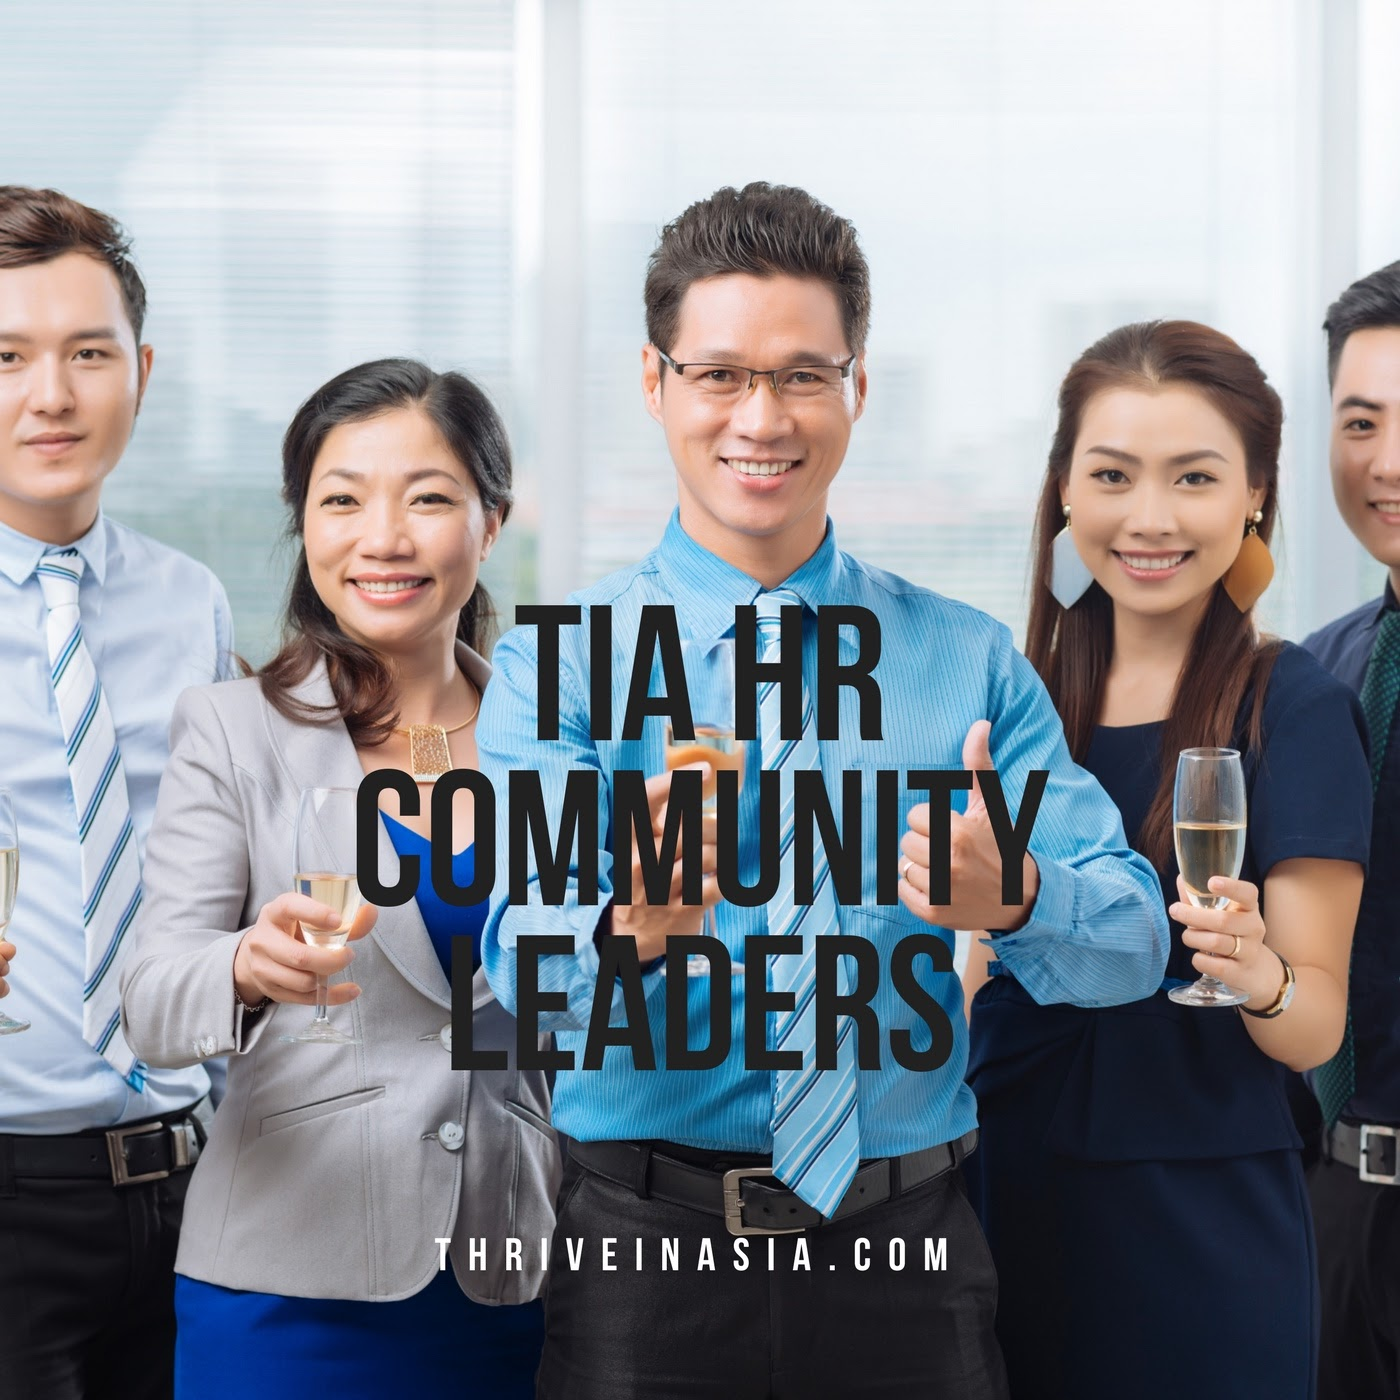 Thrive in Asia HR Community Leaders